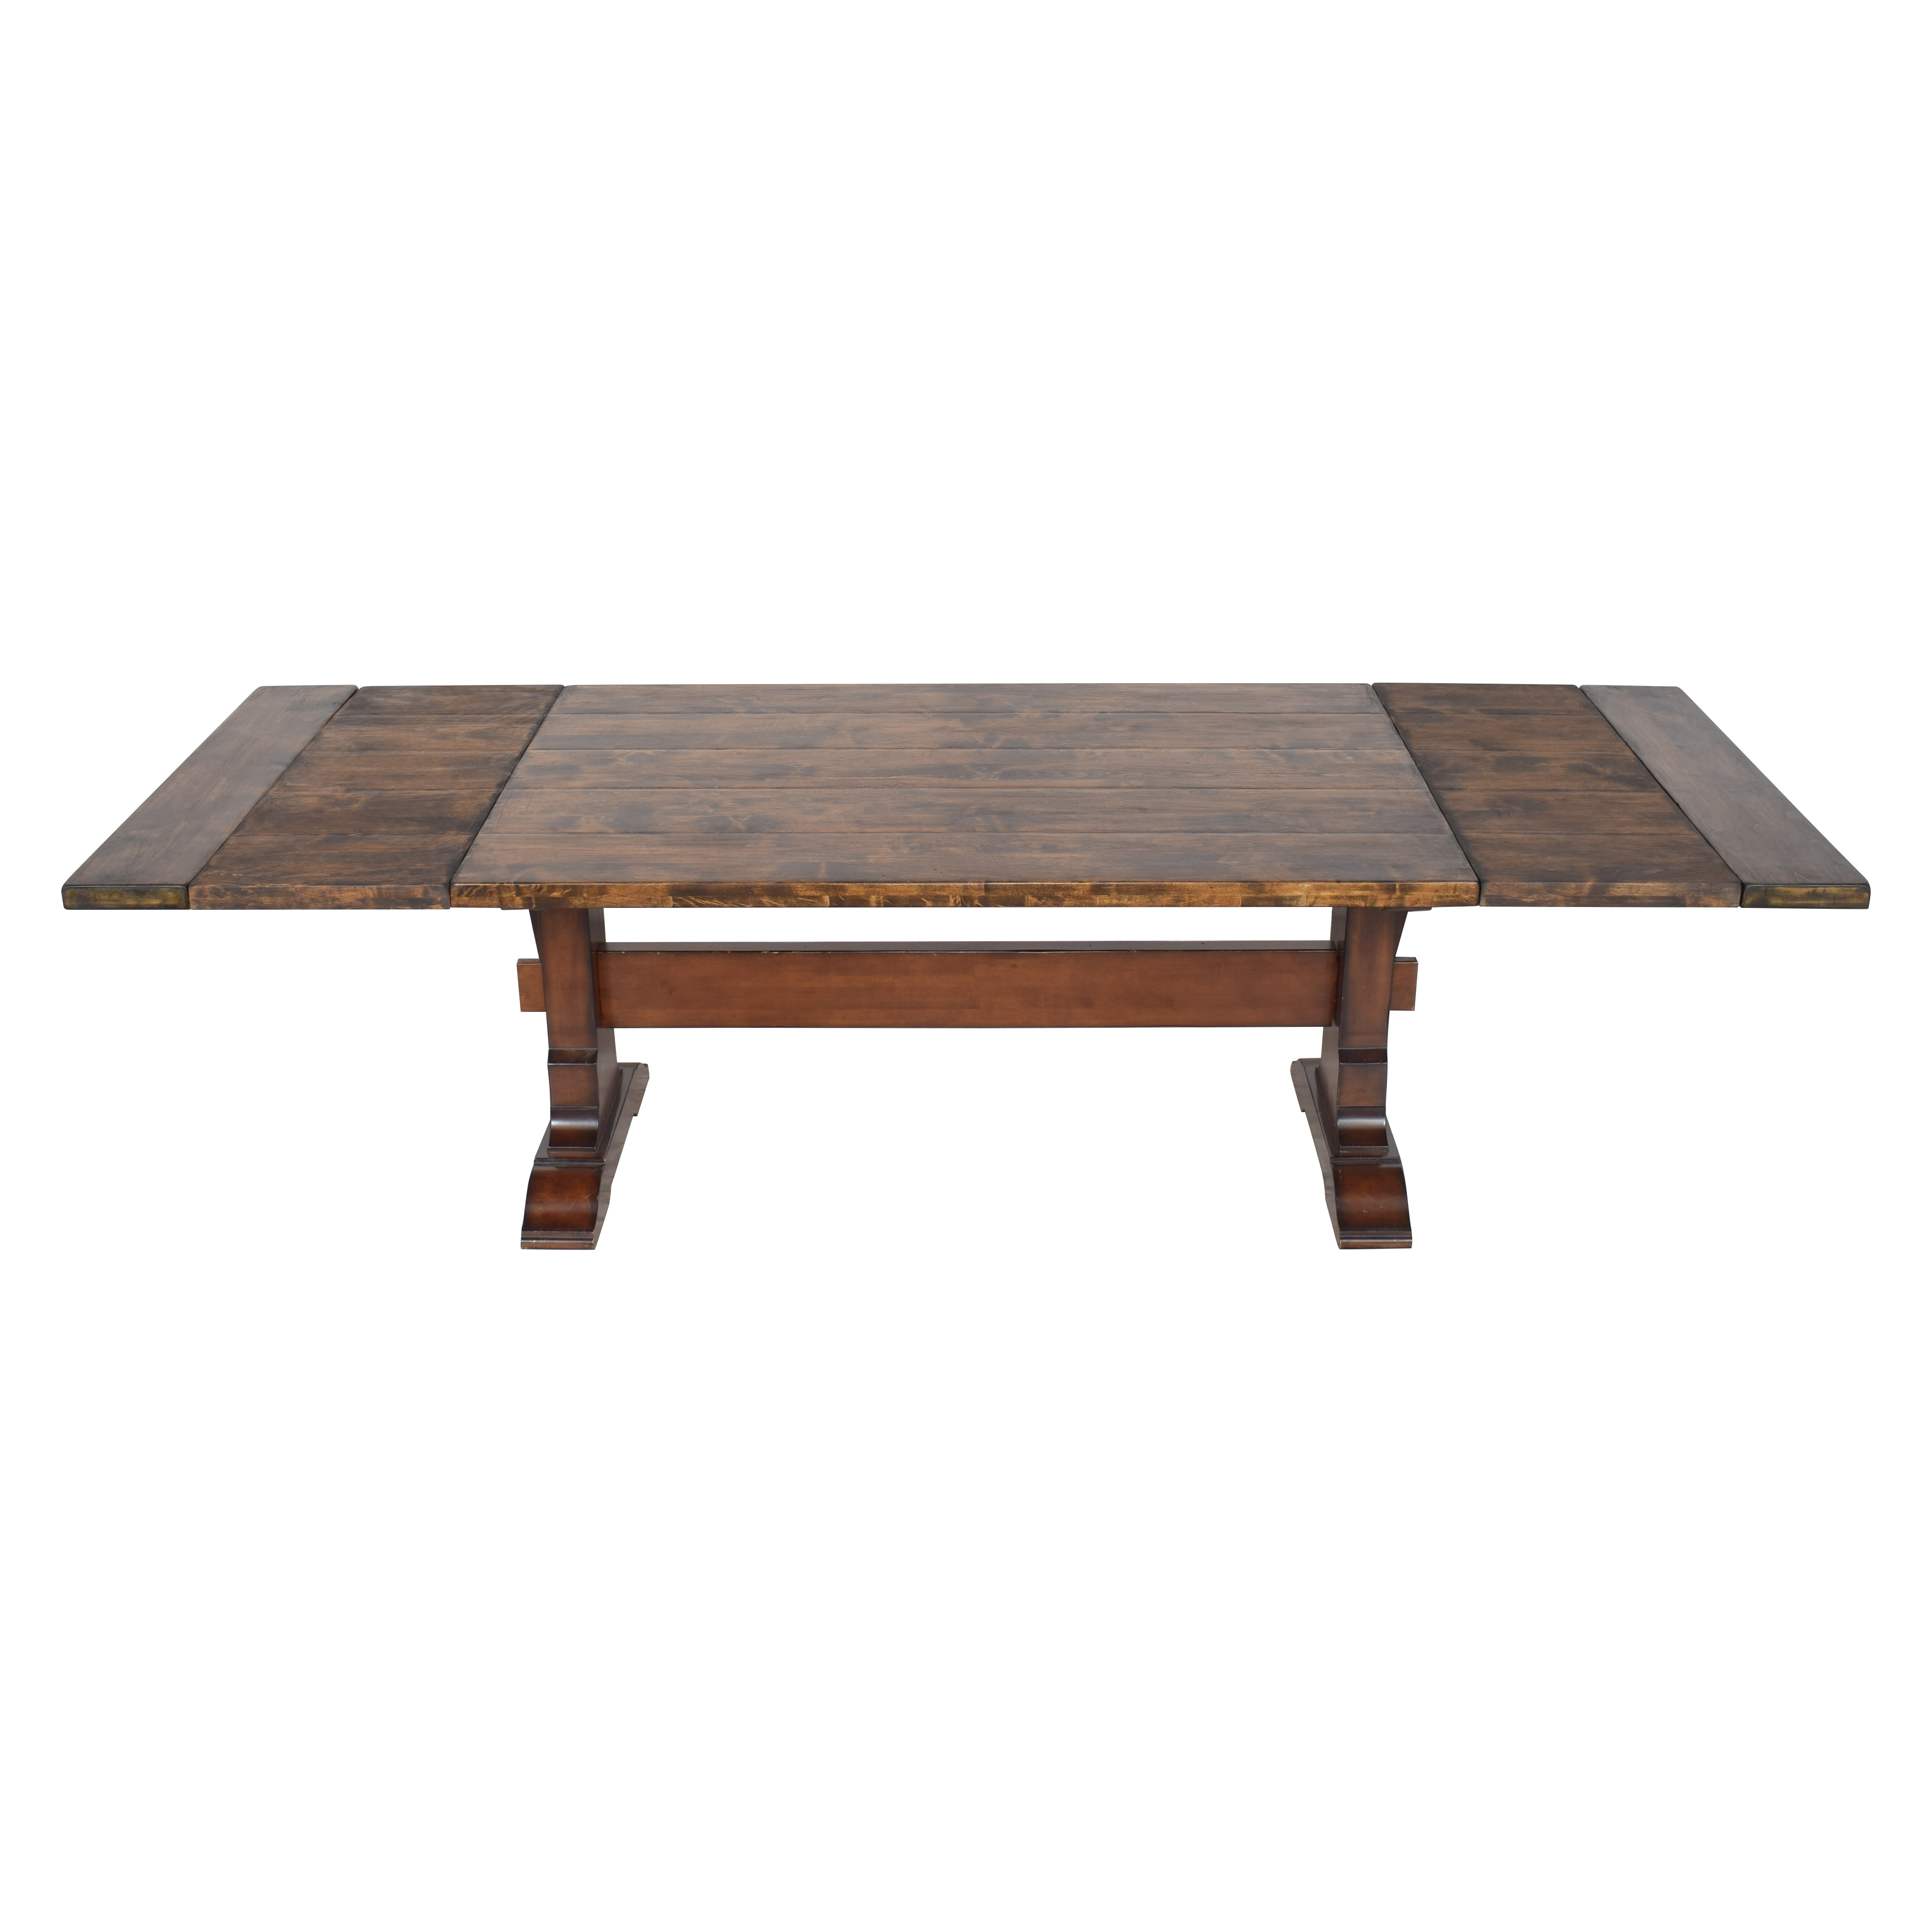 Pottery Barn Pottery Barn Trestle Dining Table used